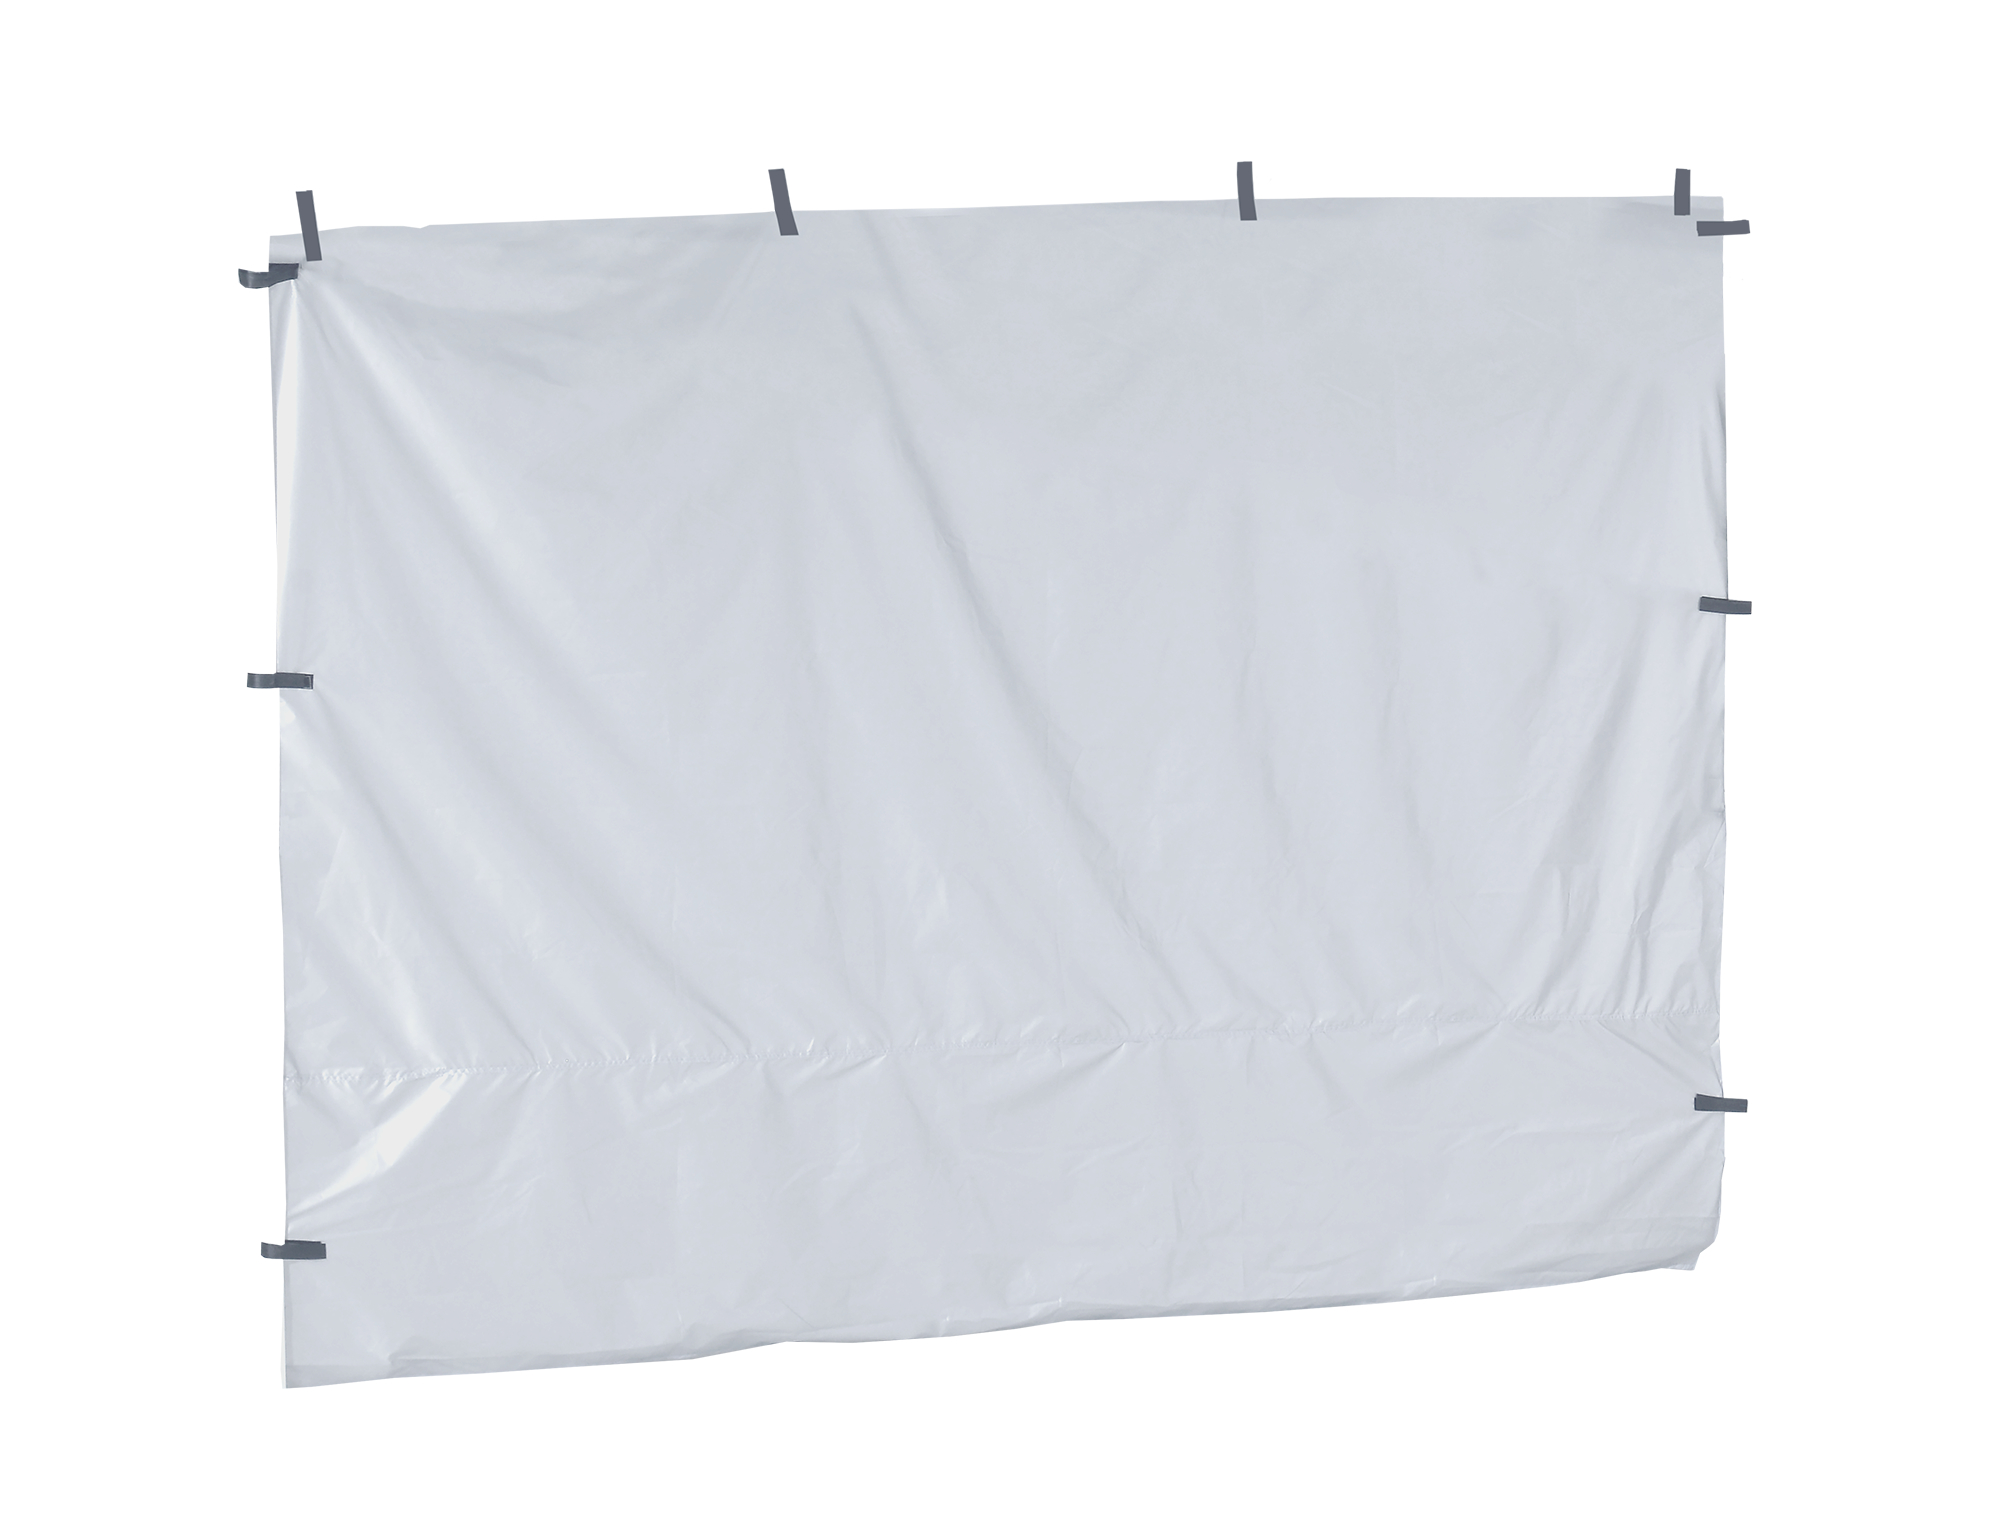 10 Ft Canopy Wall Panel White Walmart Com Walmart Com